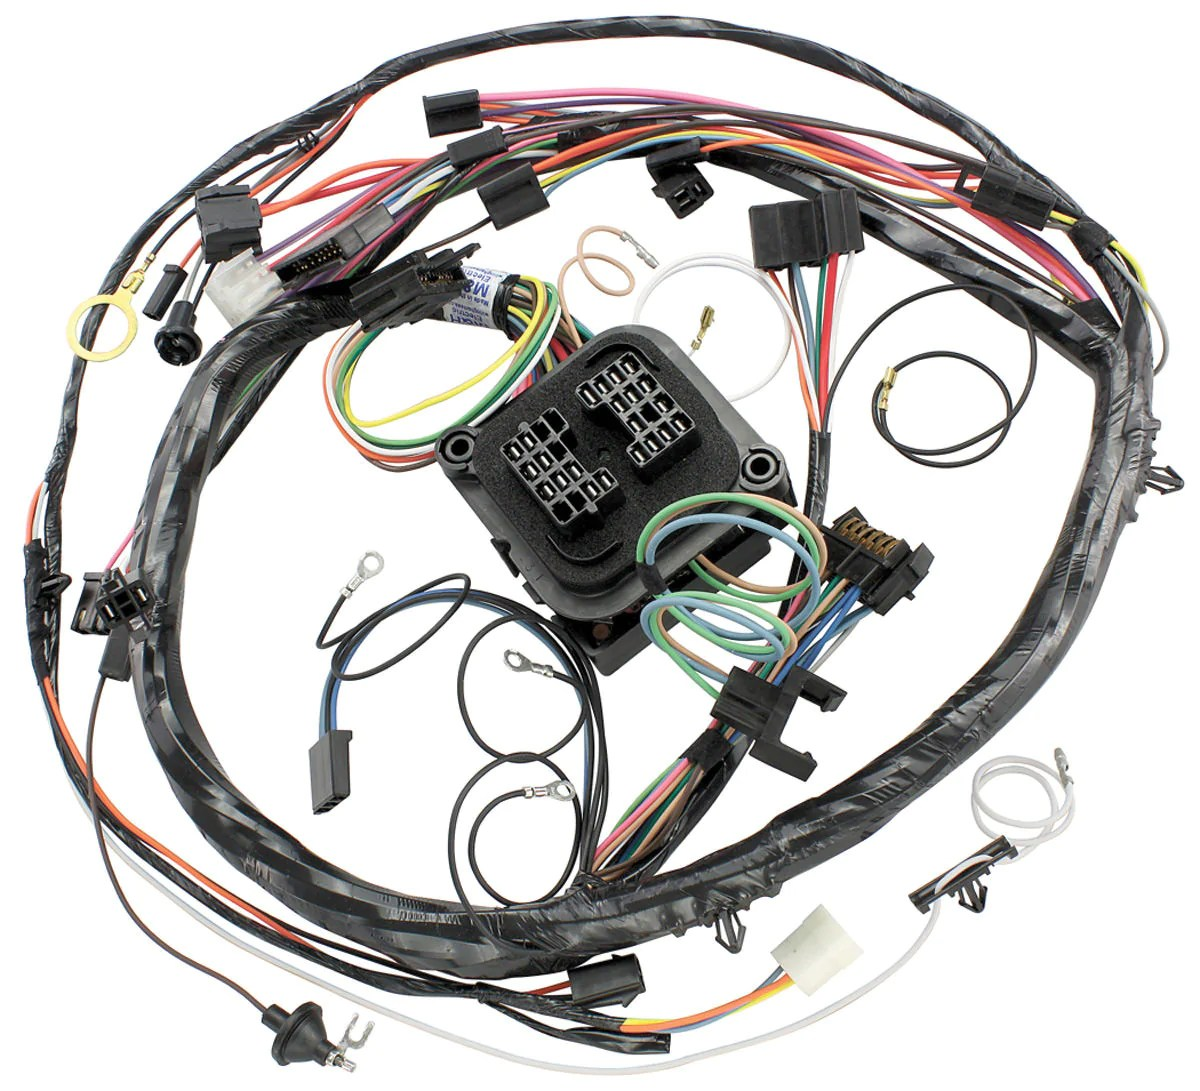 1970 chevelle and el camino ss dash harness with factory gauges hi chevelle dash wiring harness main for cars with factory gauges 1970 [ 1200 x 1091 Pixel ]